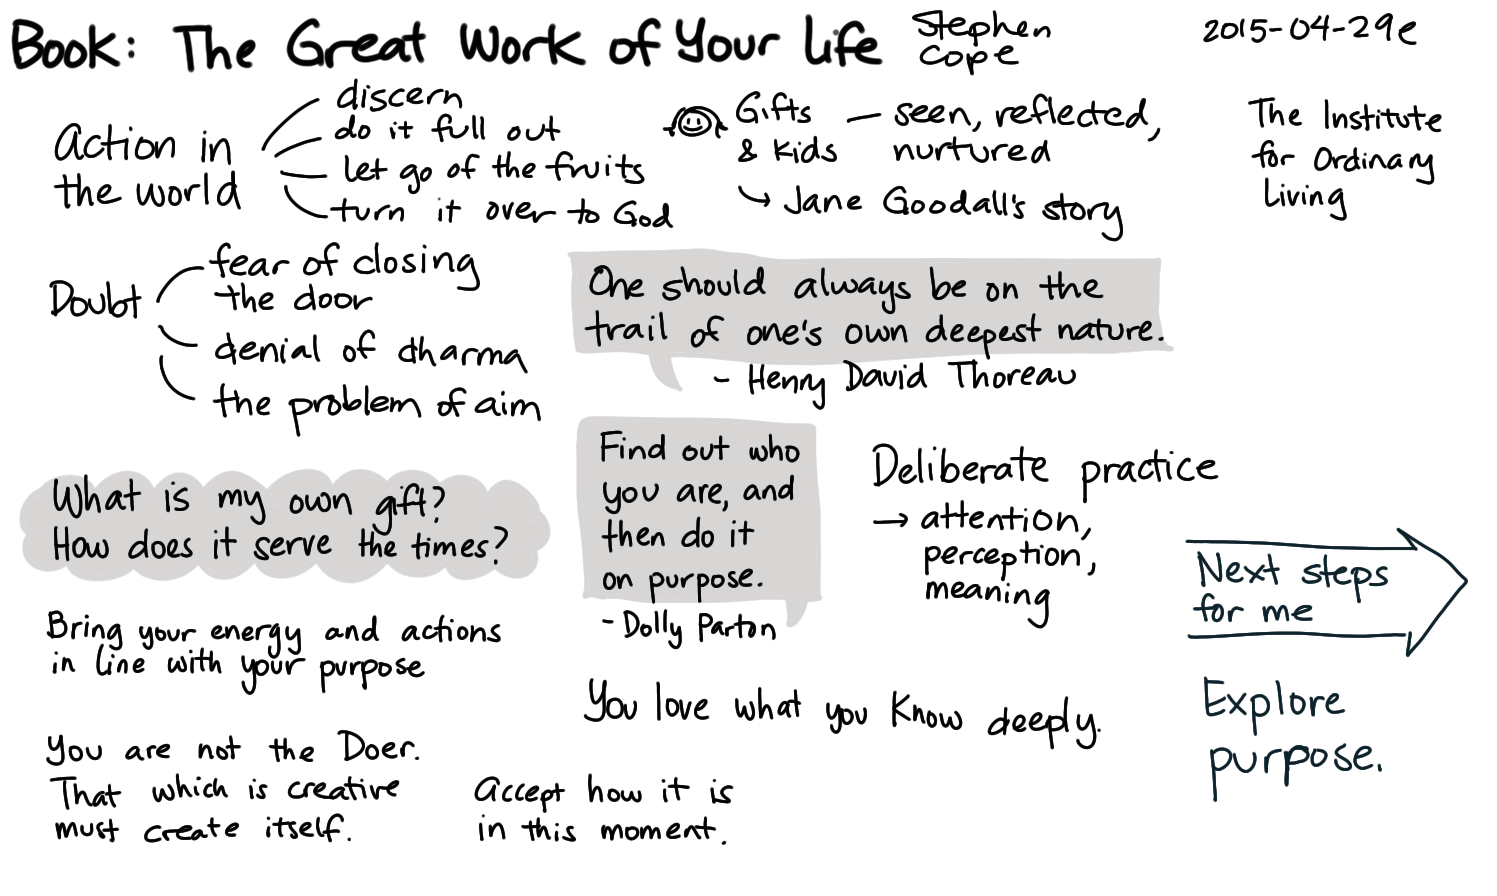 2015-04-29e Raw book notes - The Great Work of Your Life - Stephen Cope -- index card #book.png